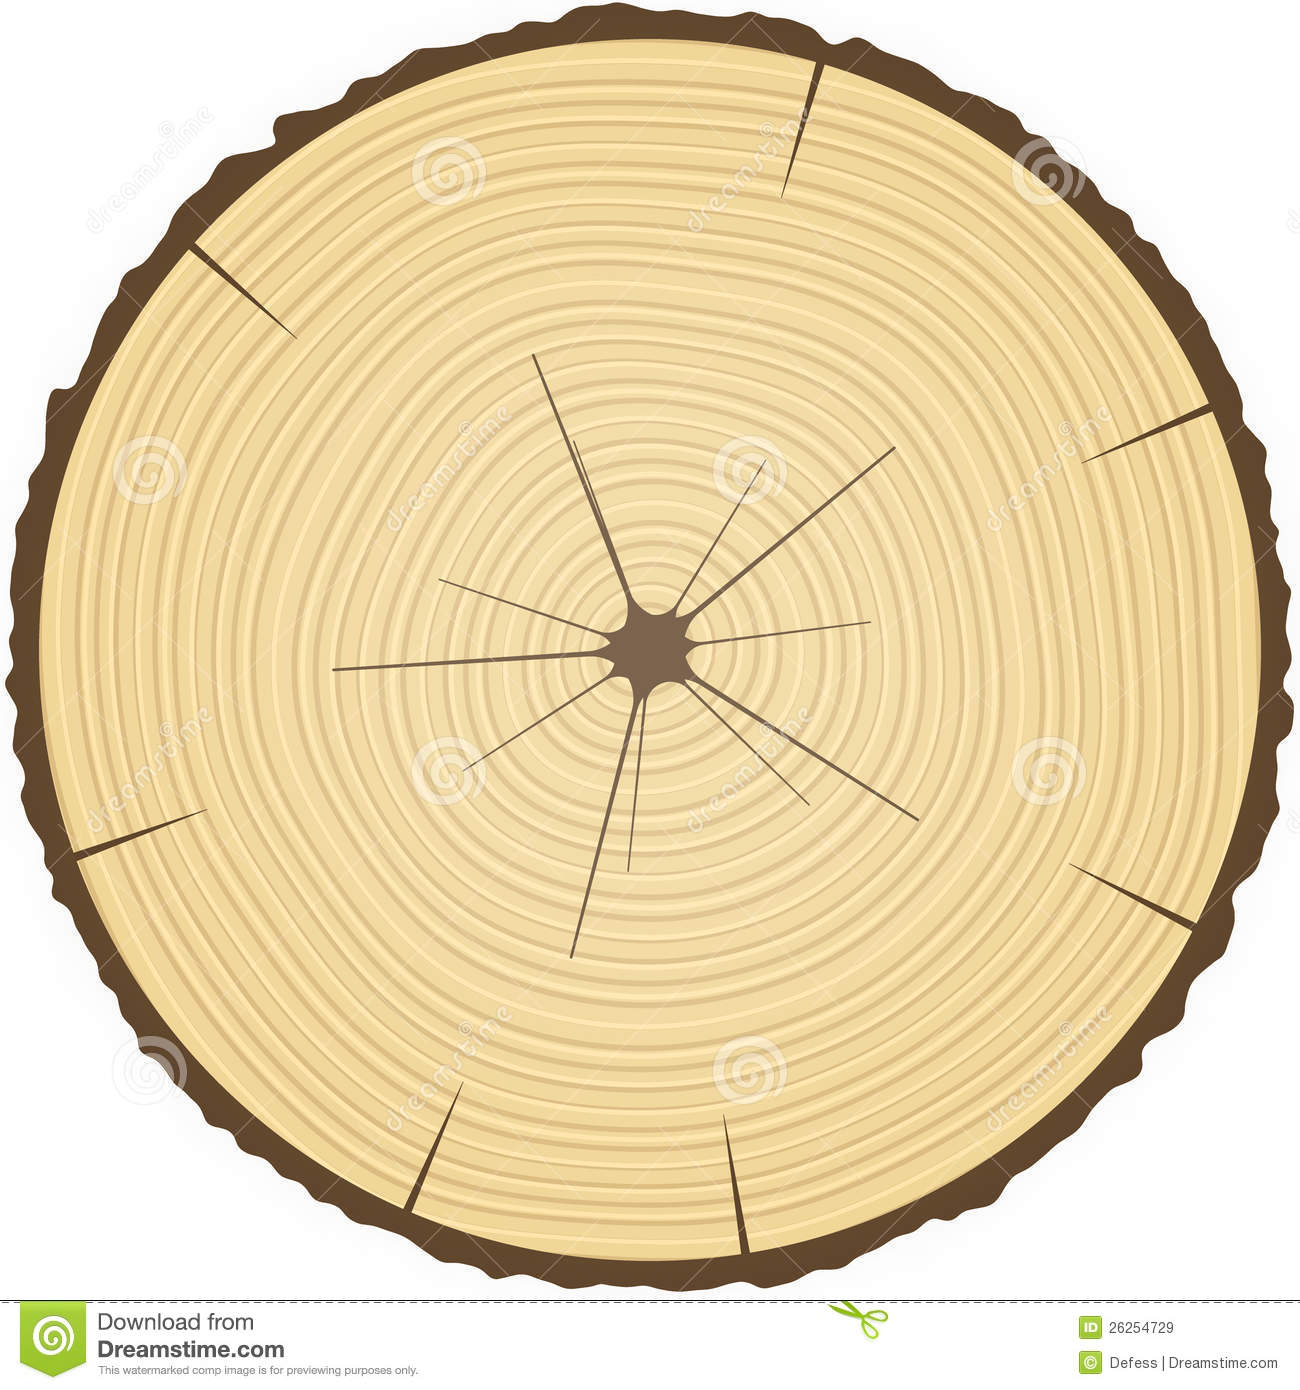 tree content uploads thisiscolossal com pin rings wp